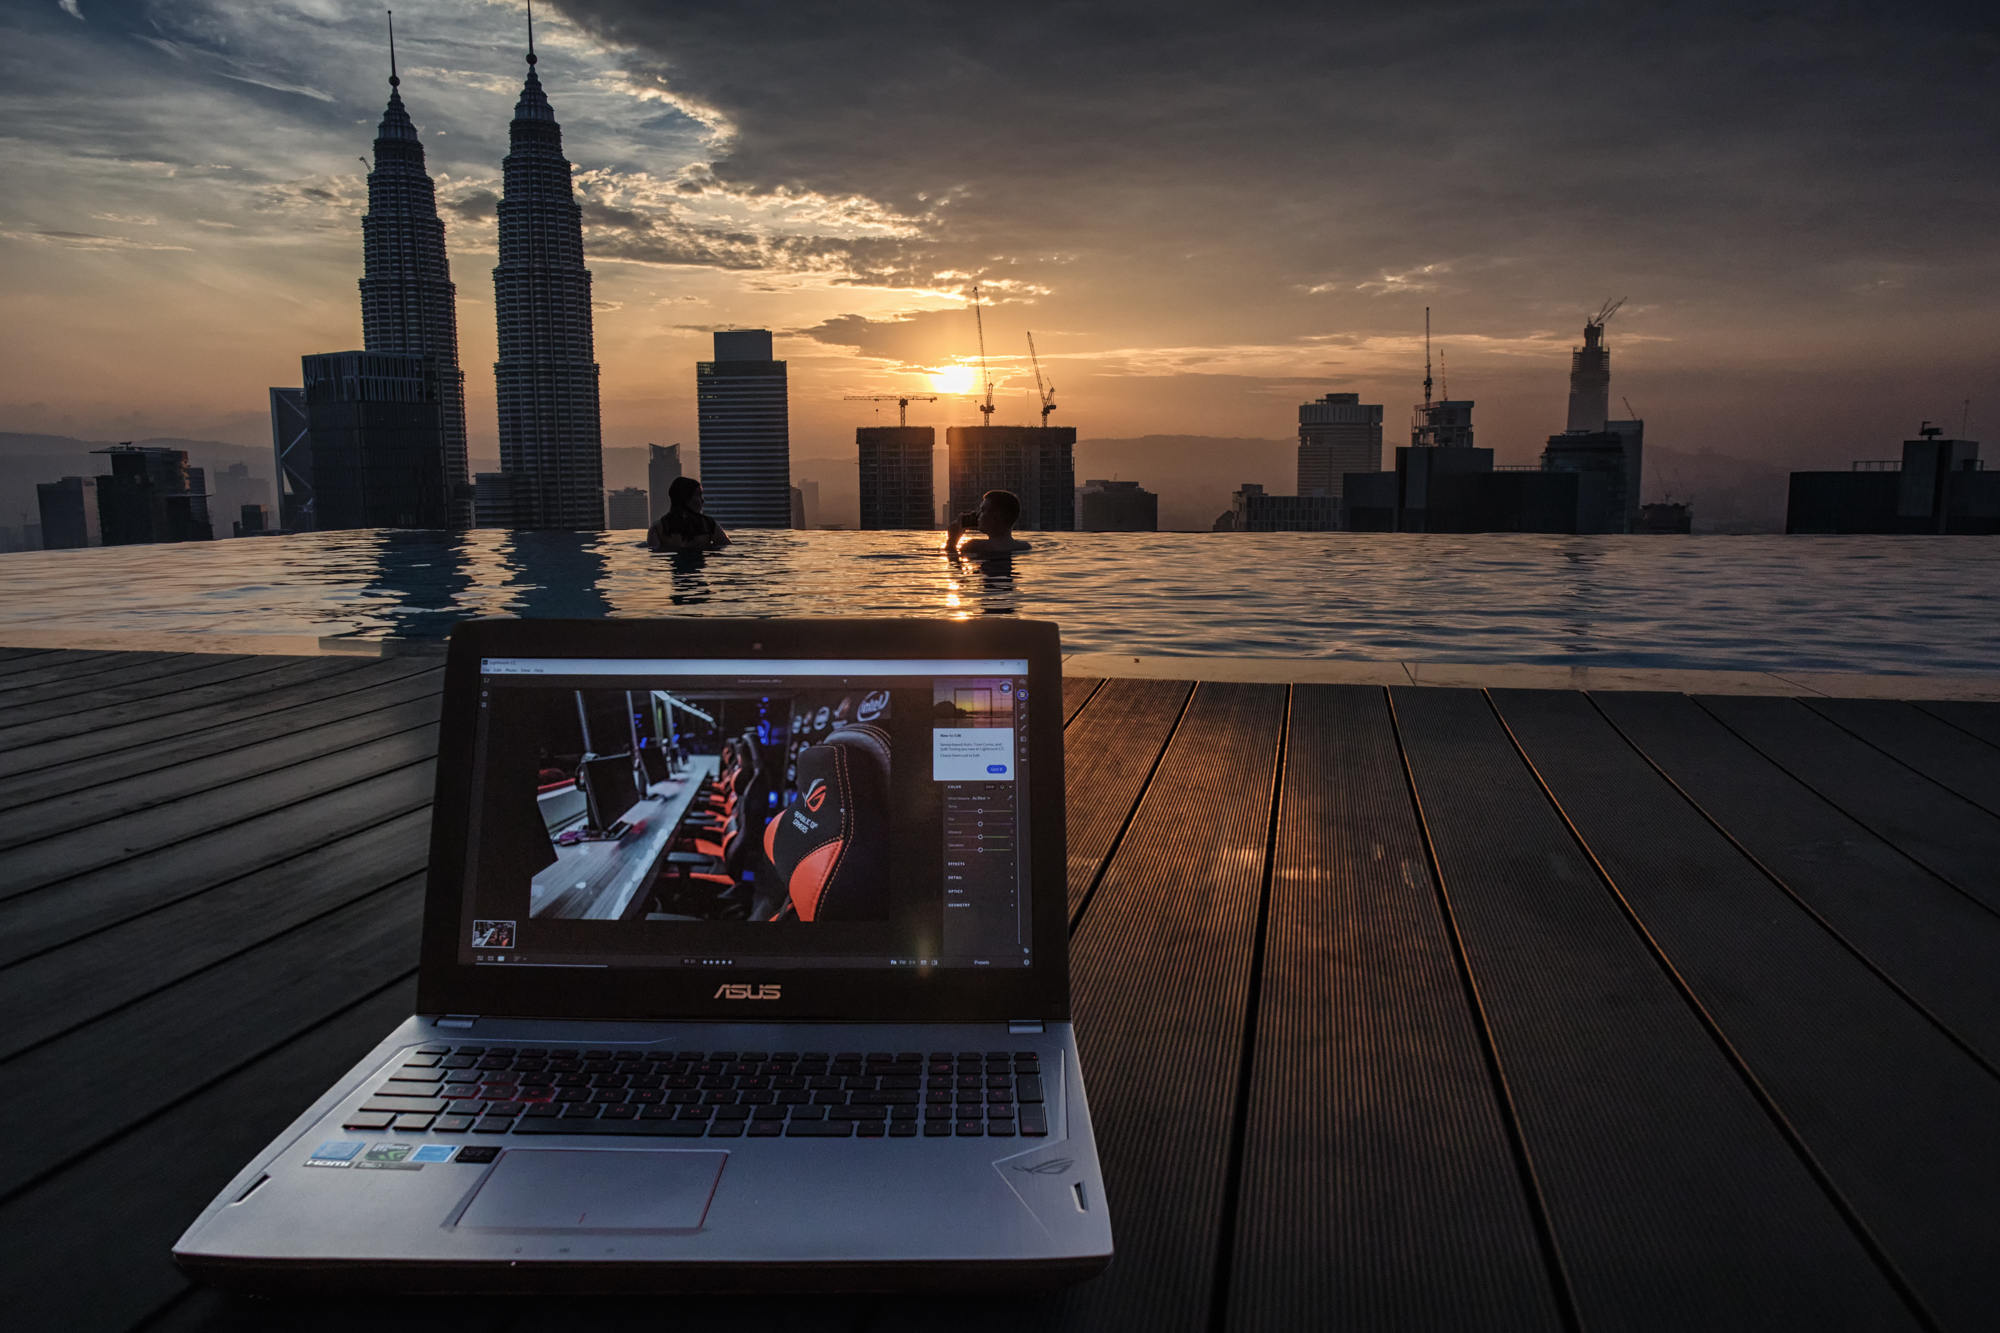 kl-laptop-inclusion-small1